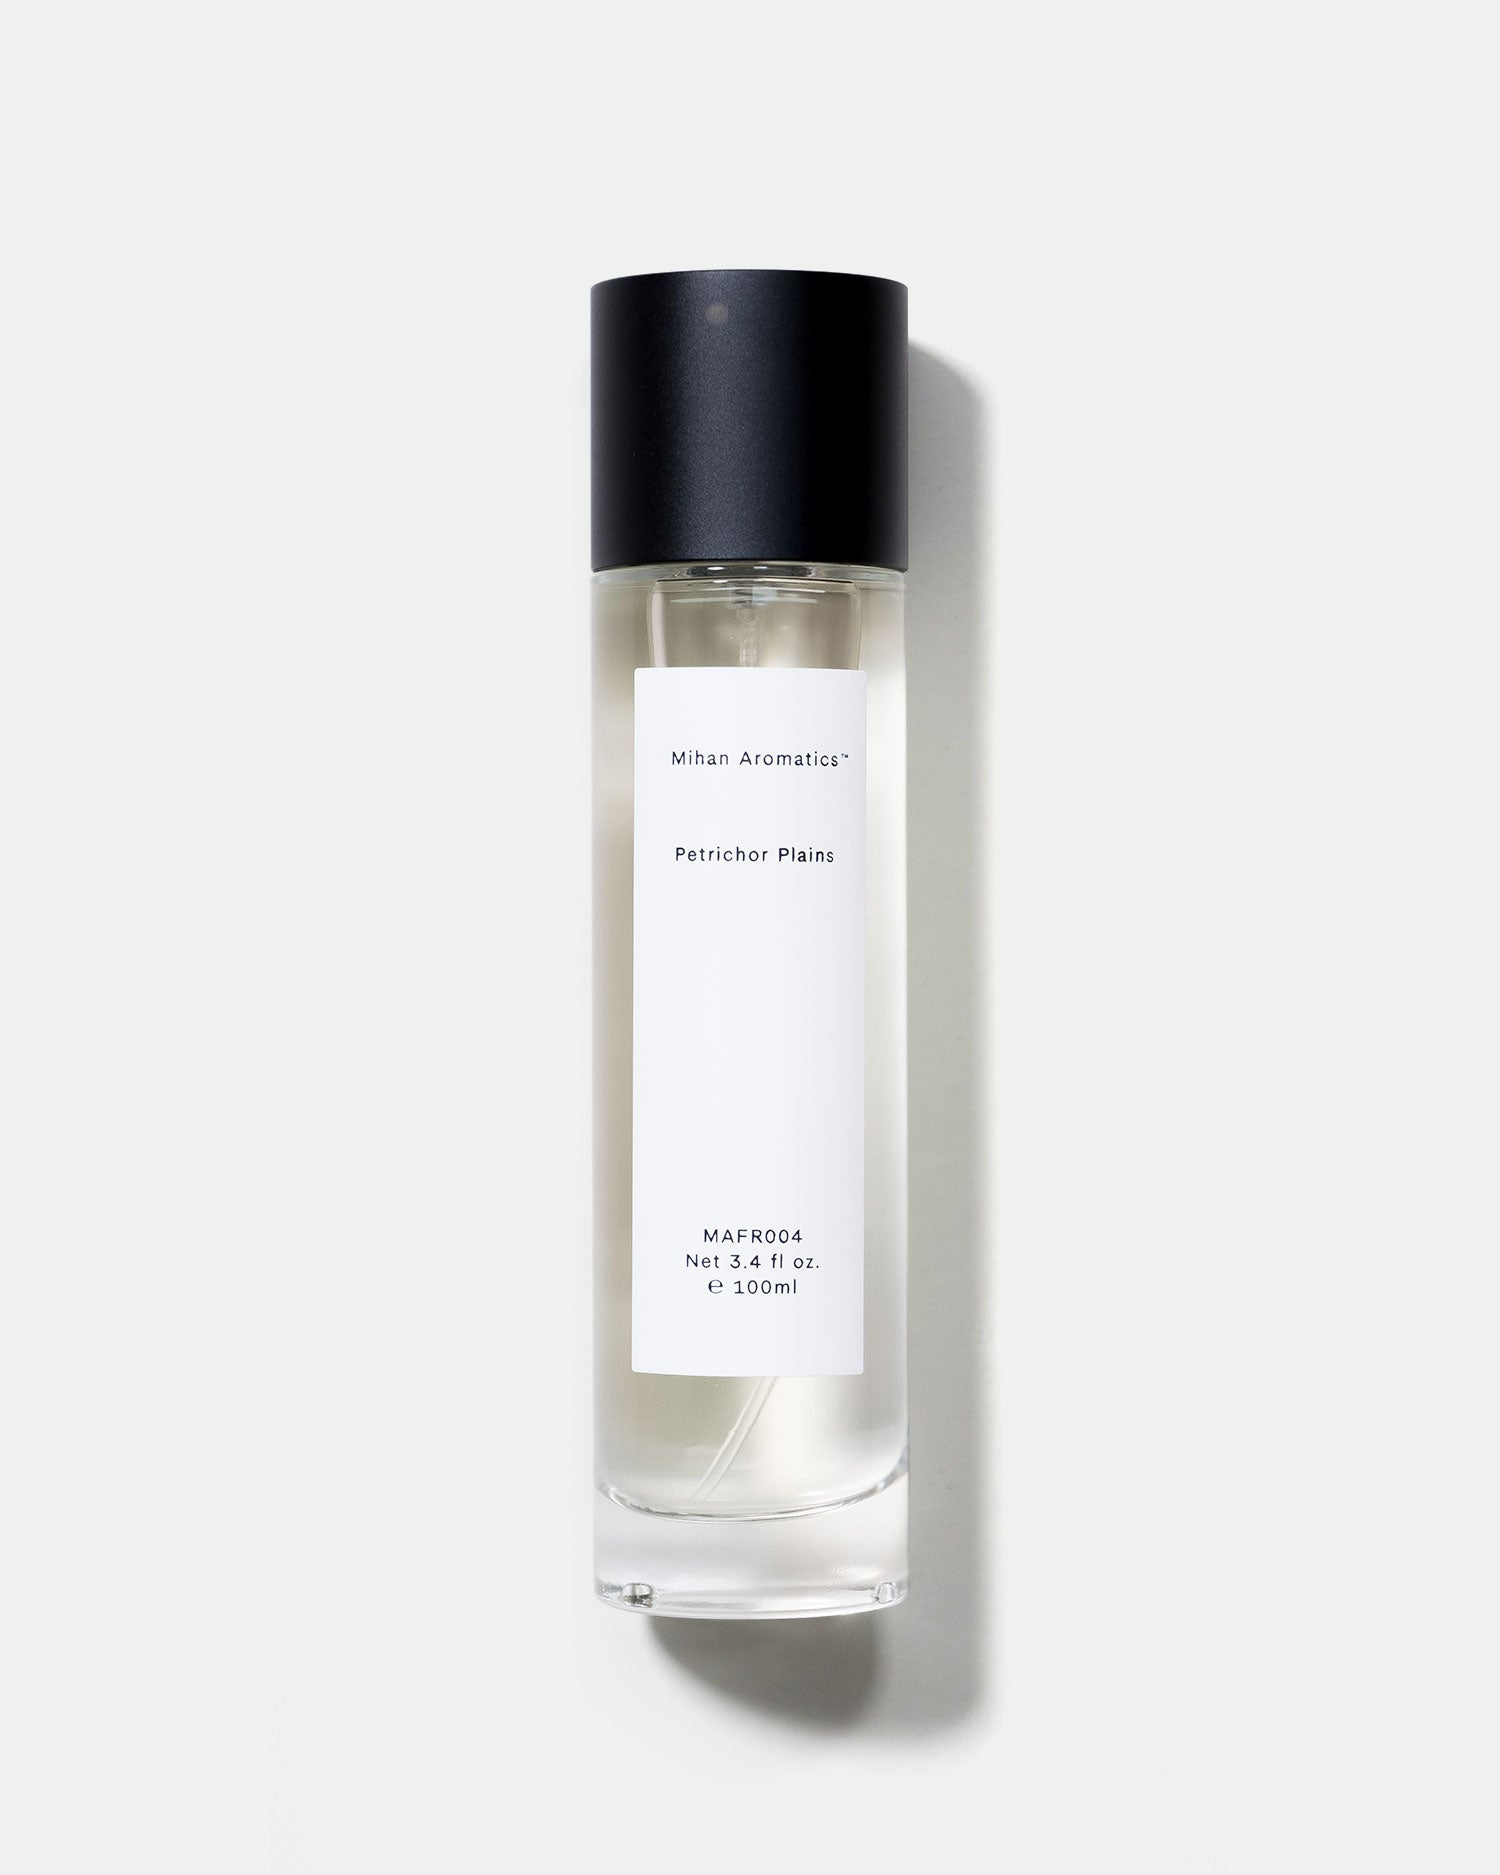 Mihan Aromatics - Petrichor Plains 100ml